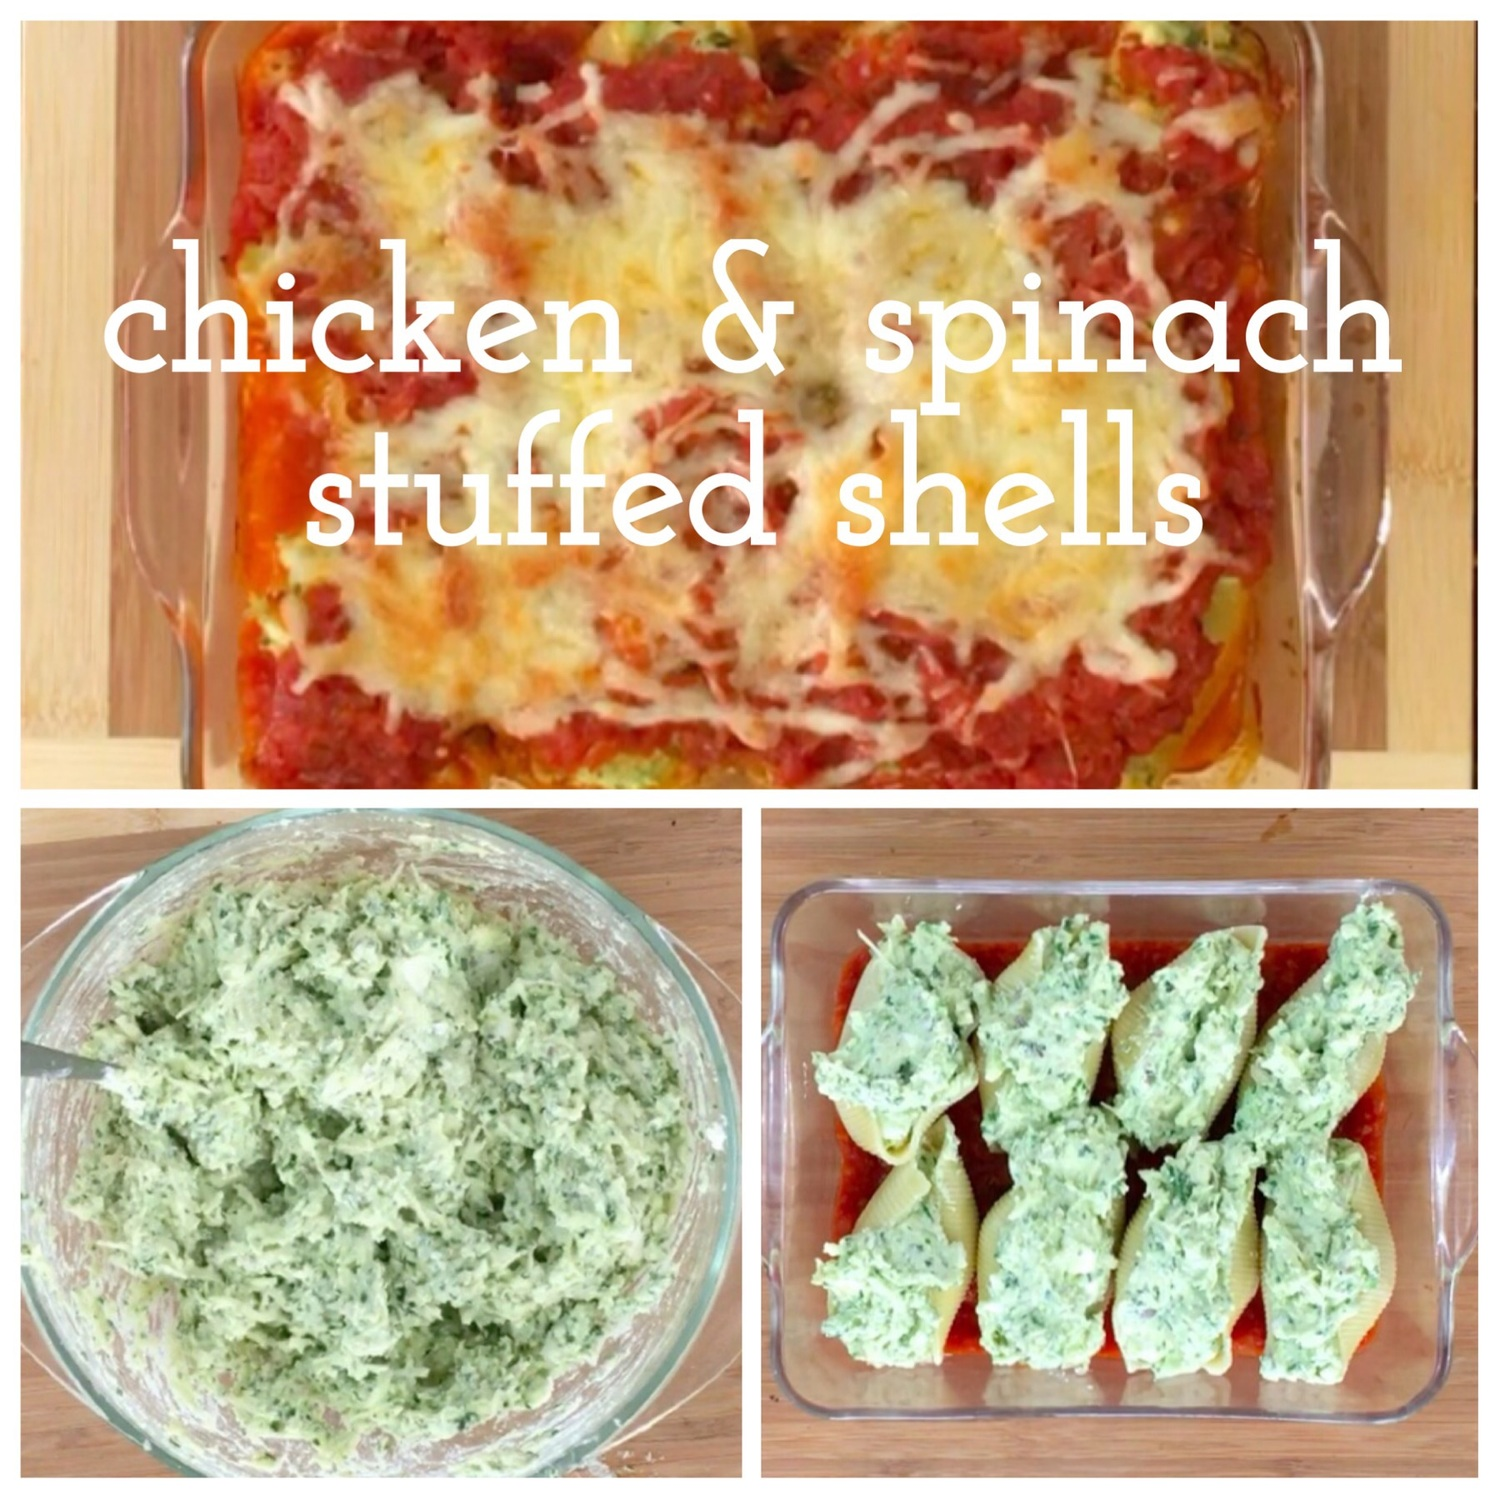 Chicken spinach stuffed shells a whole family meal simple baby imageg forumfinder Choice Image